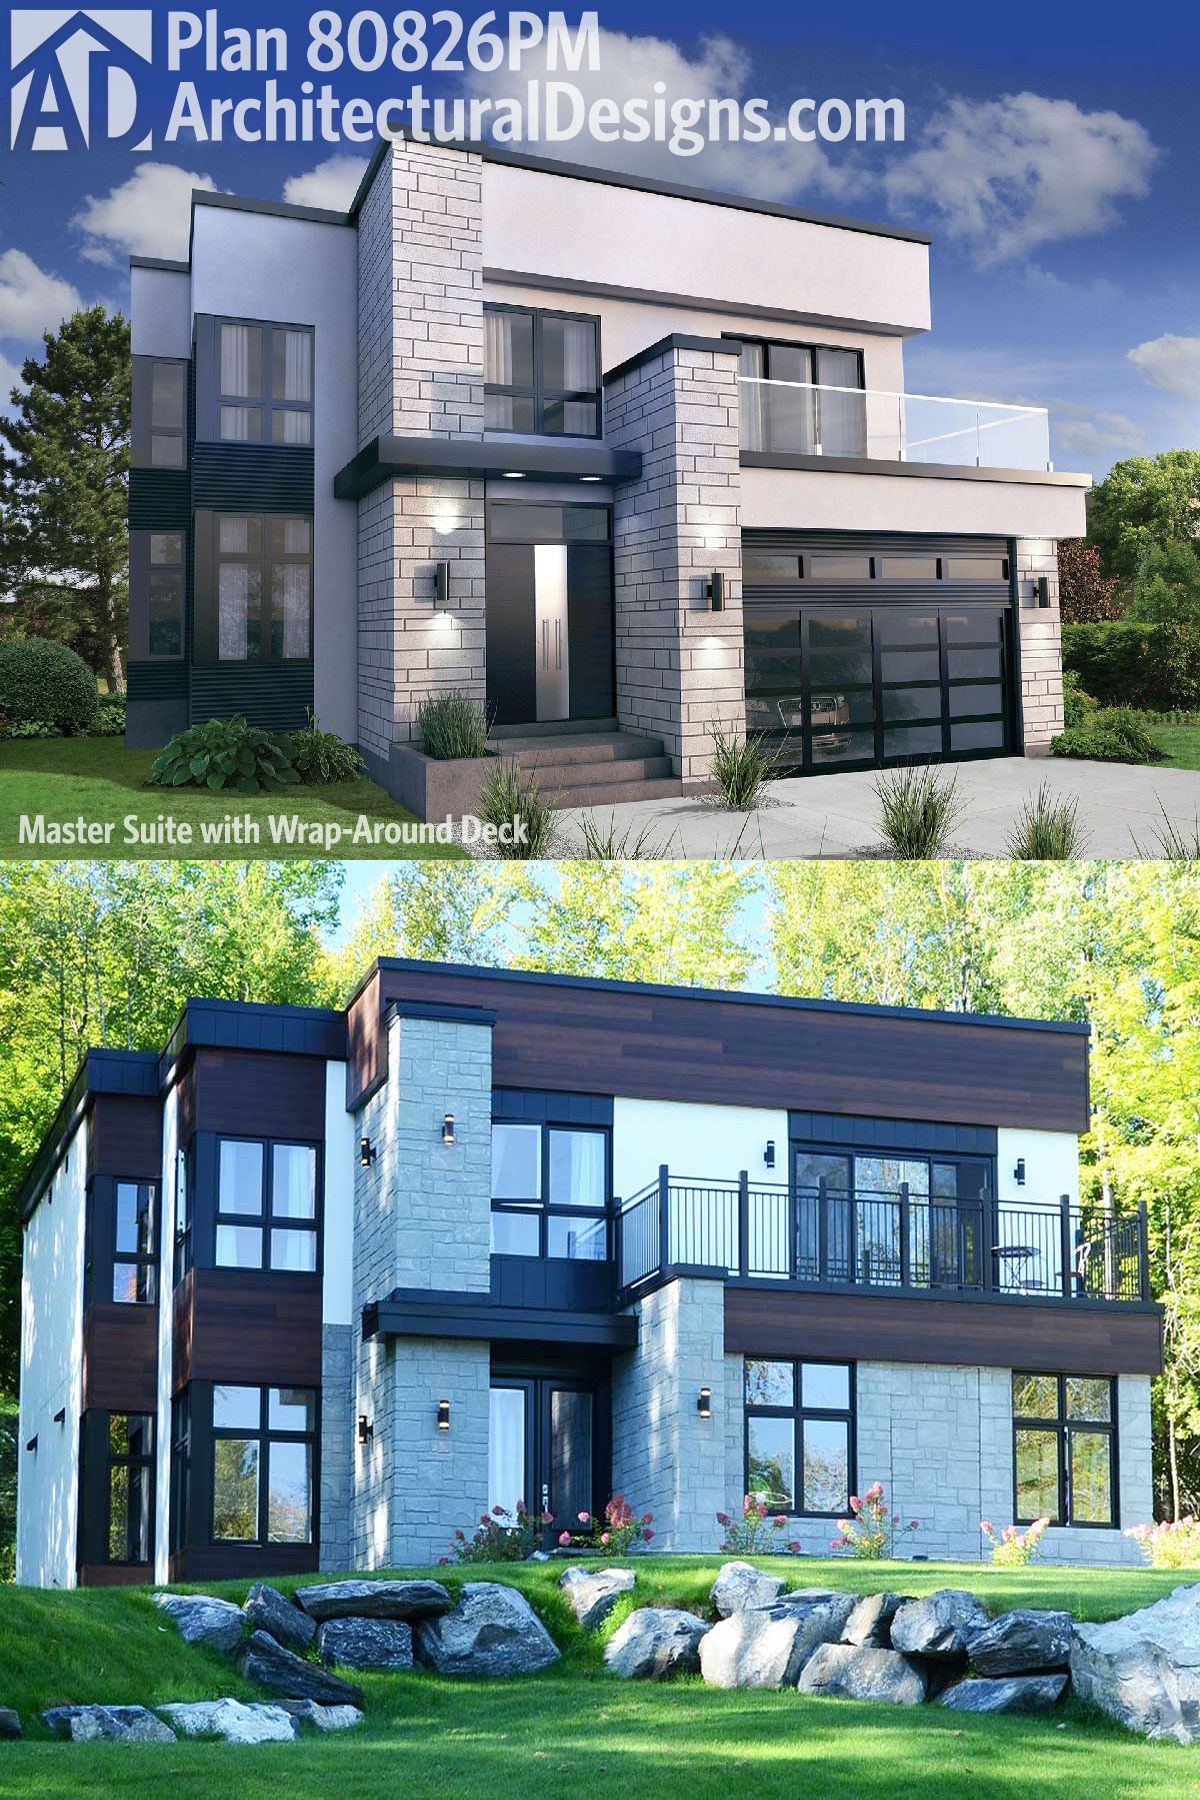 Our first pictures of Architectural Designs Modern